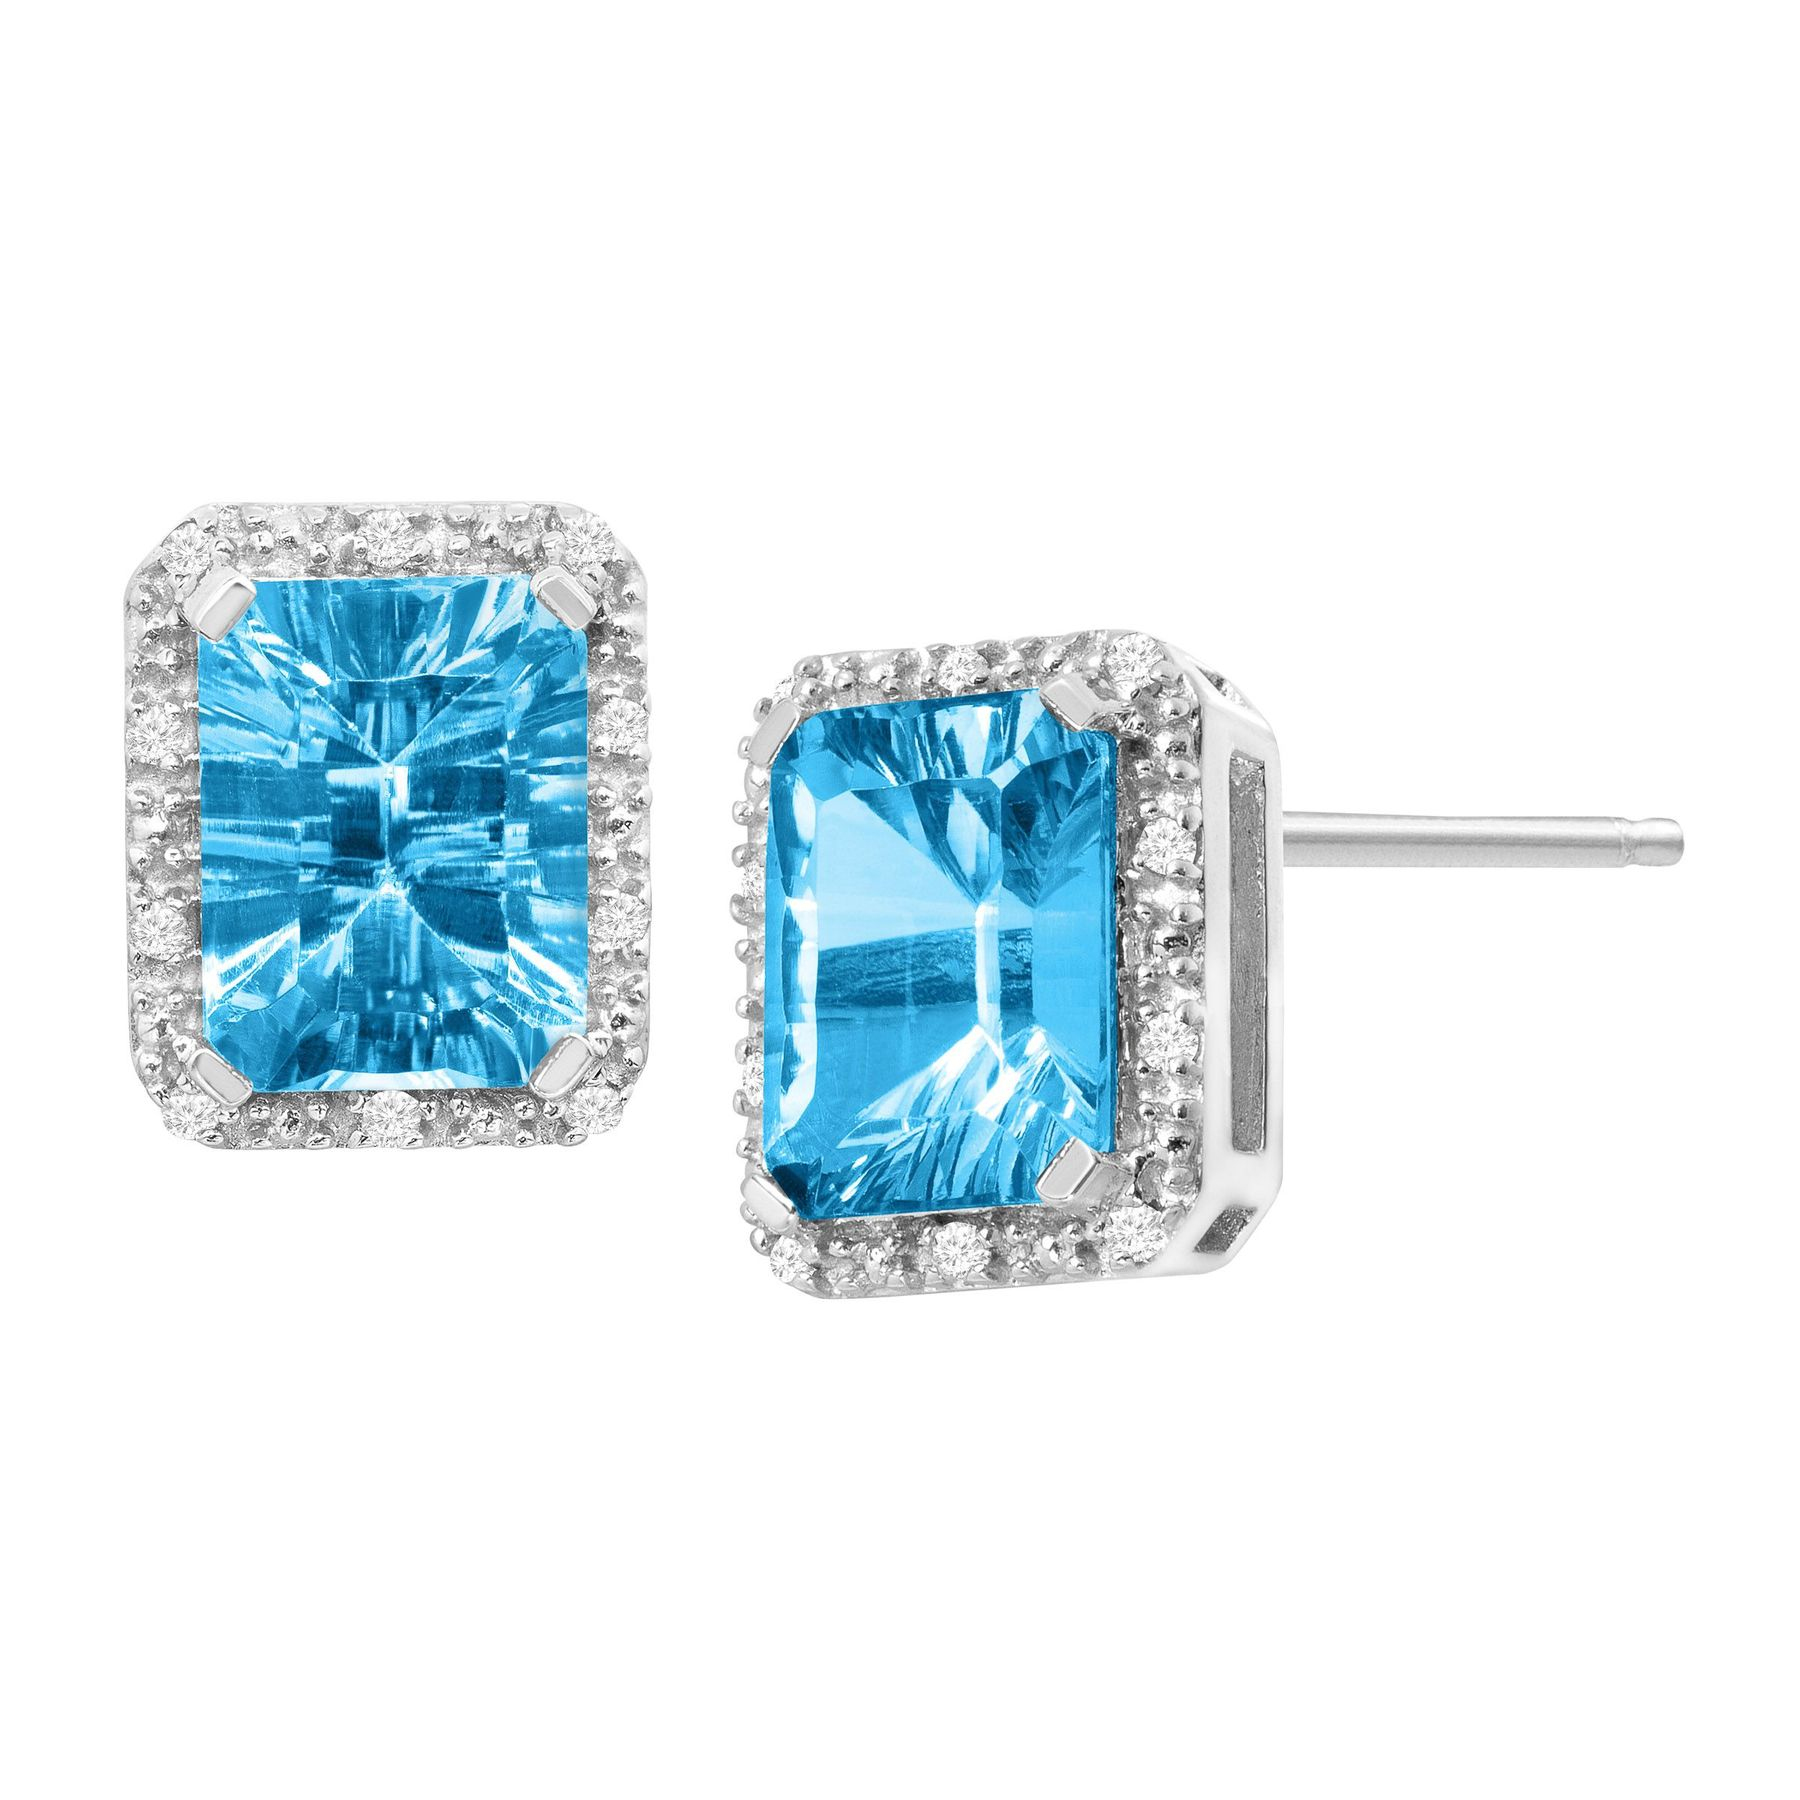 shanghai coin zoom blue roberto sale now stud earrings topaz